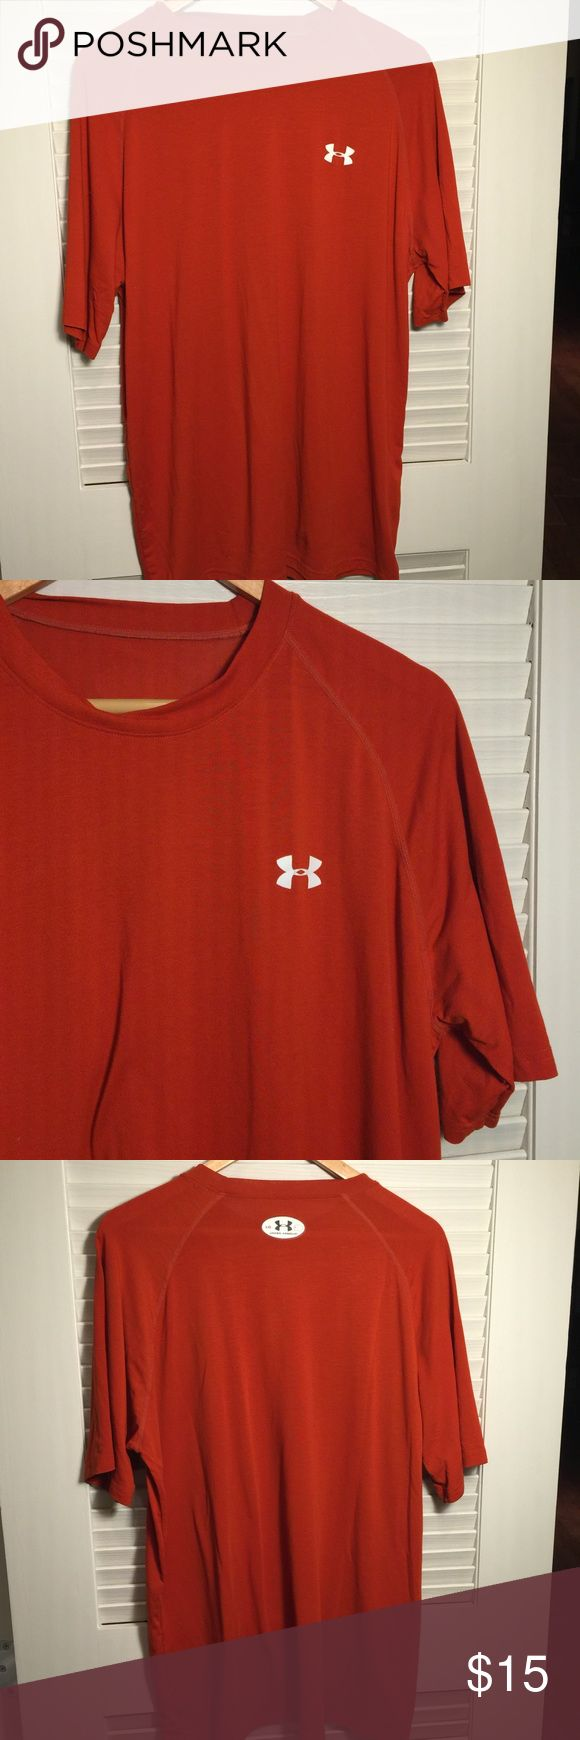 Under Armour Burnt Orange Tee In good condition Under Armour Shirts Tees - Short Sleeve